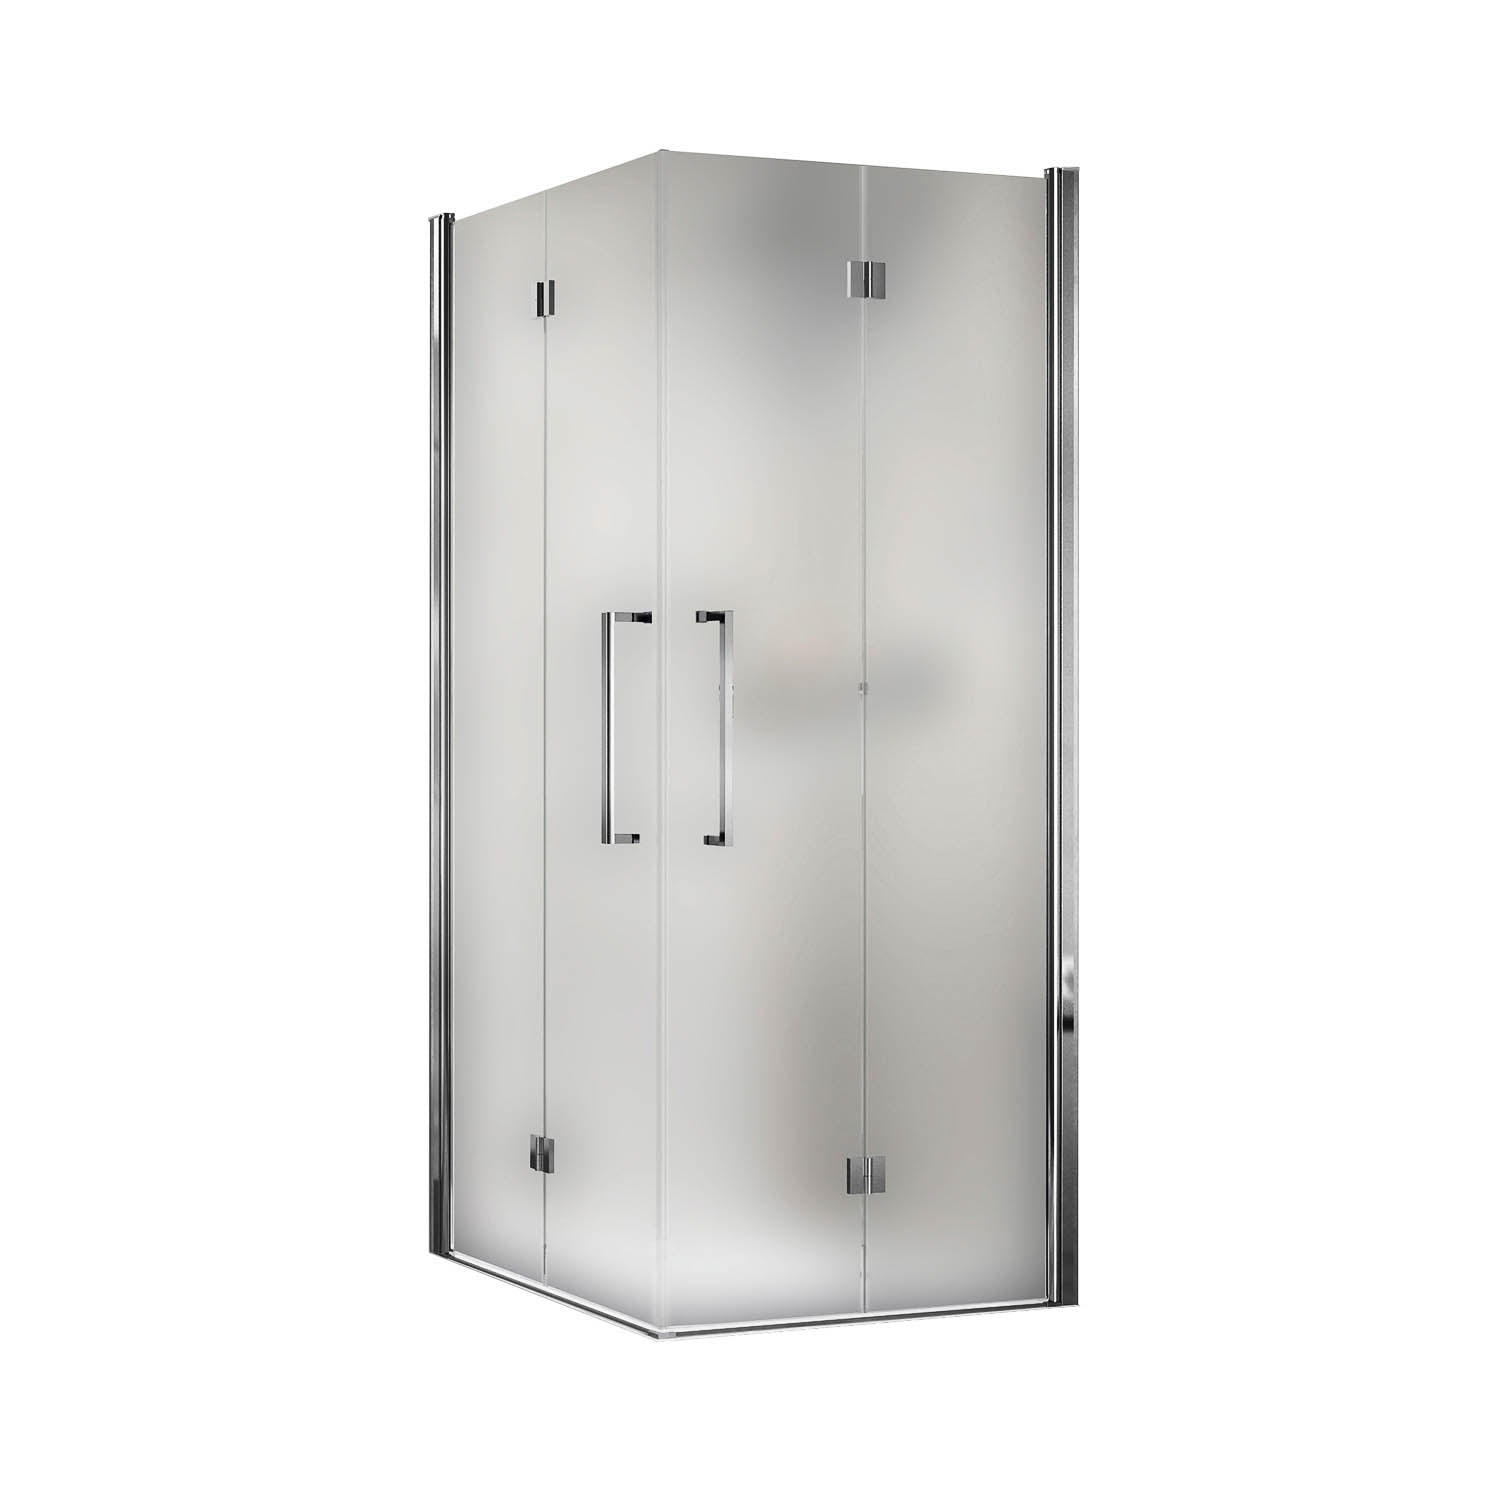 690-710mm Bliss Bi-folding Screen Frosted Glass with a chrome finish on a white background